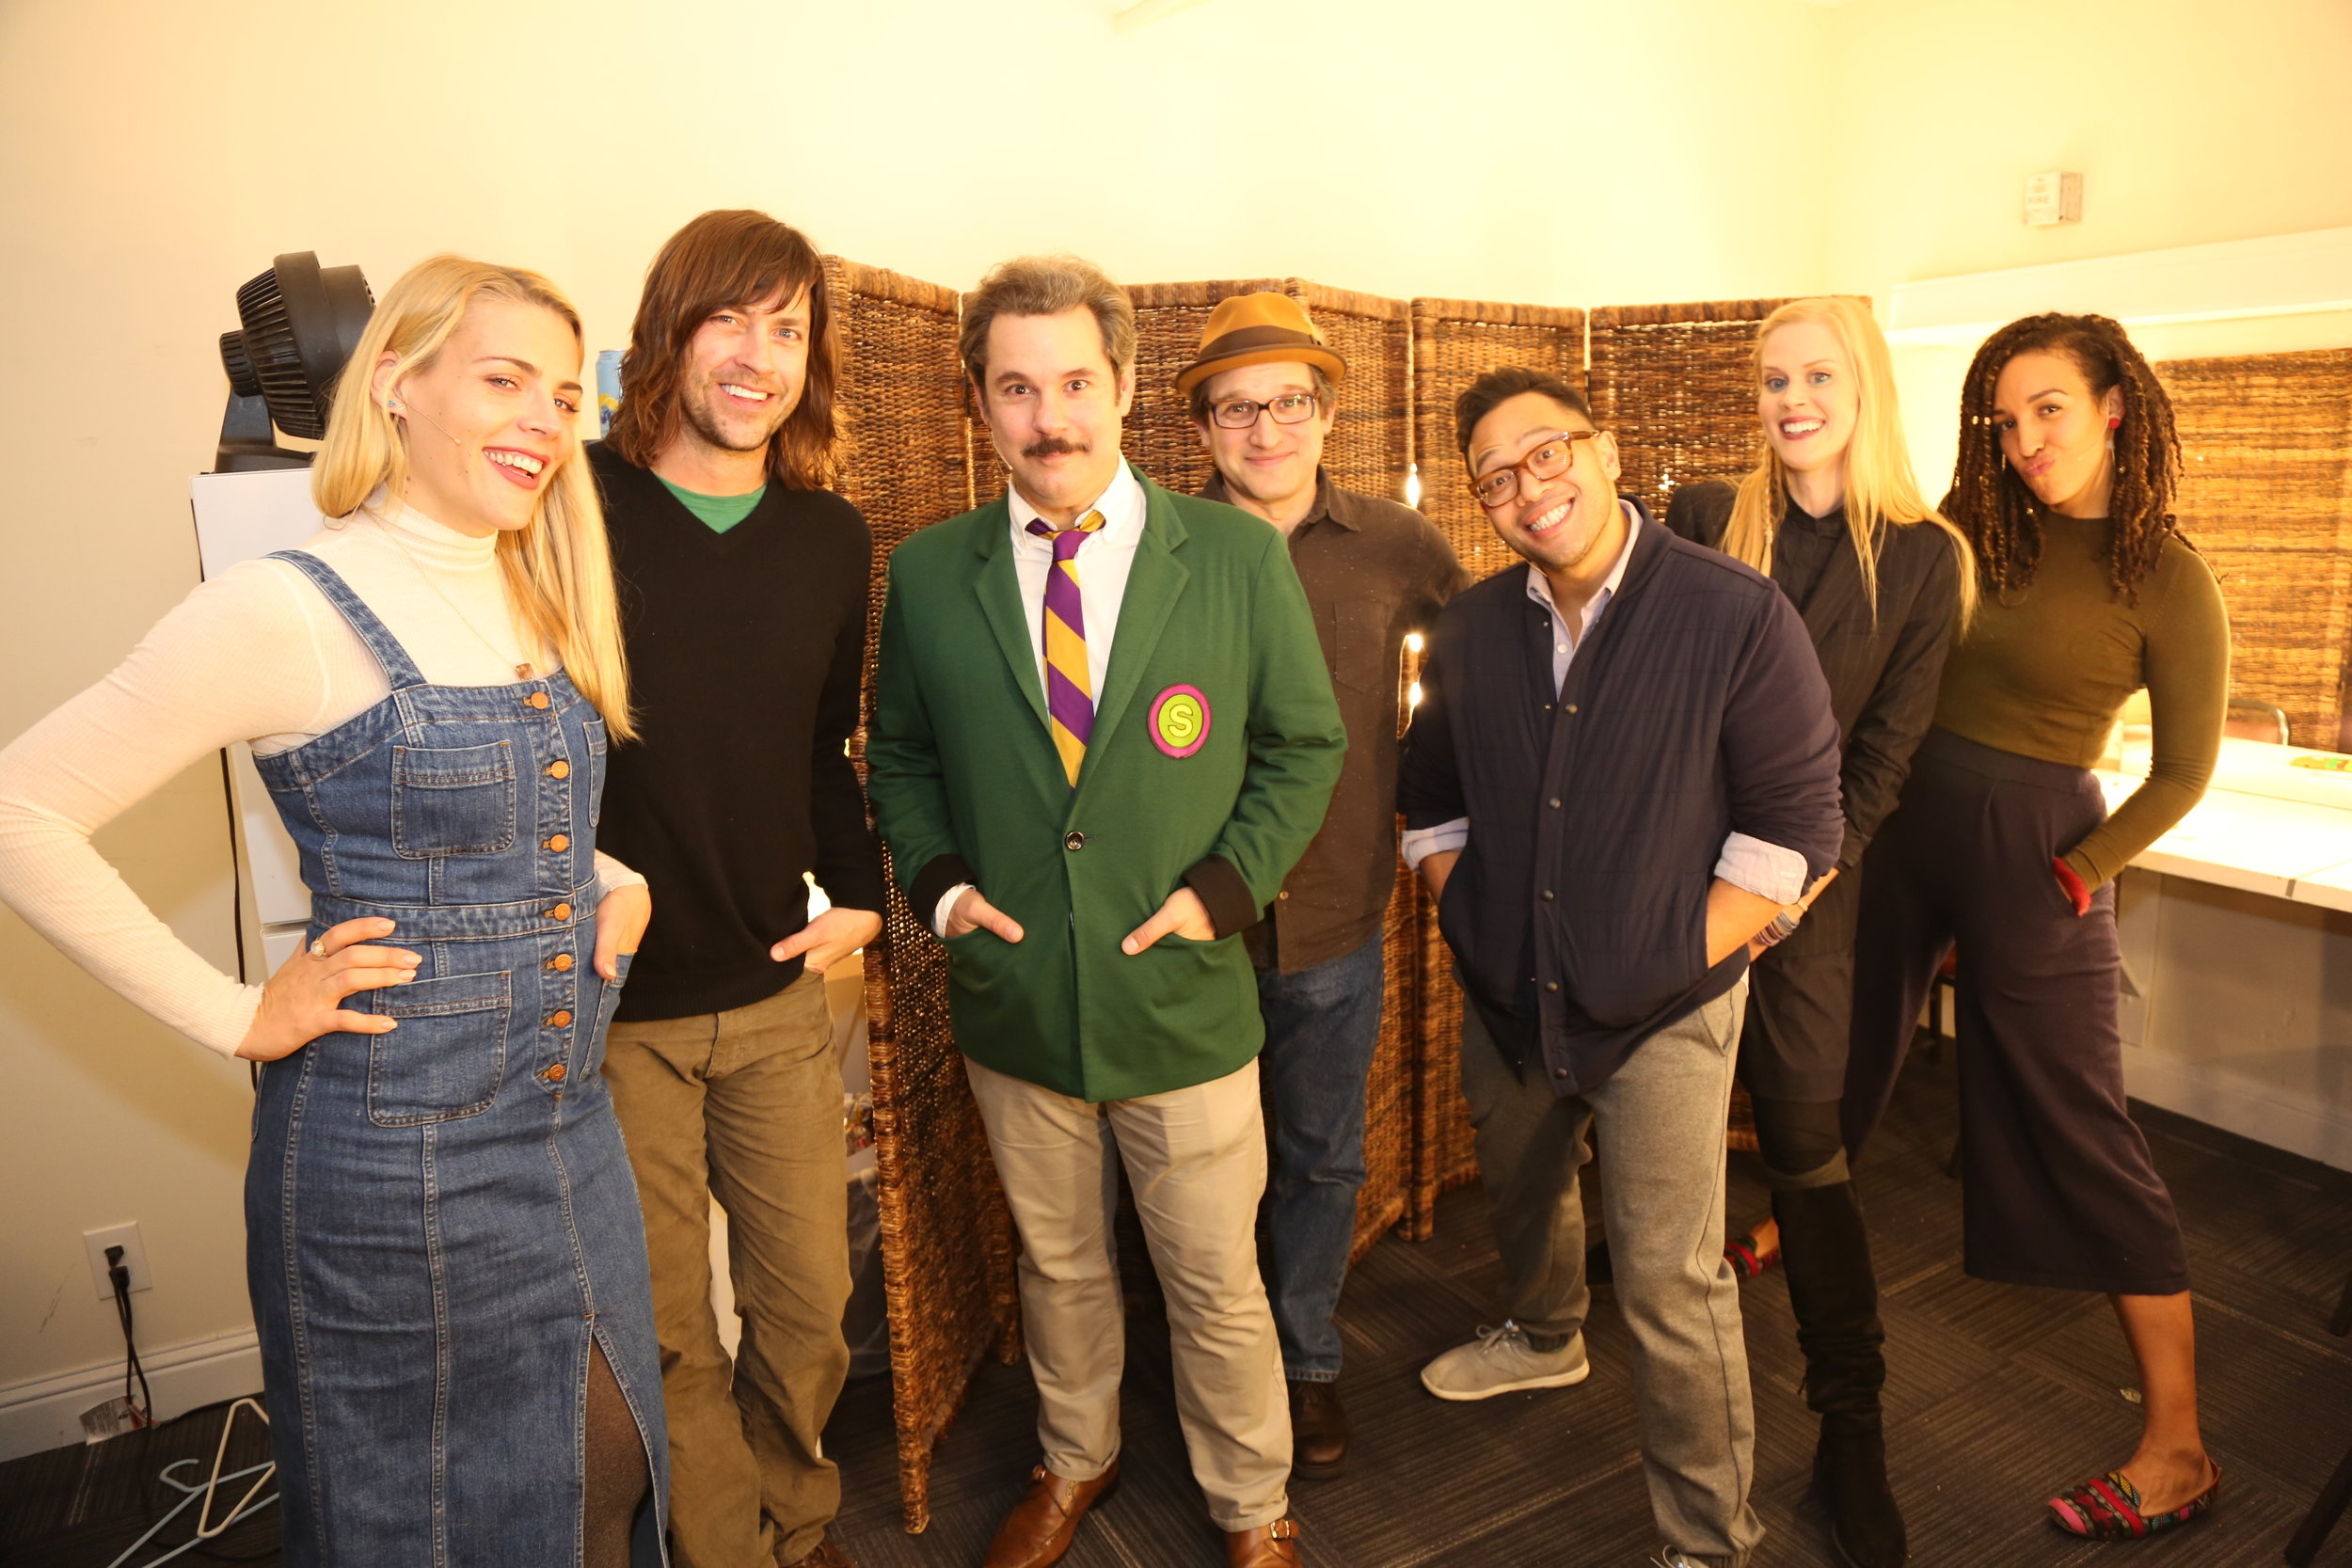 "Spontaneanation with Paul F. Tompkins#101 Burmese Therapist's Office(February 27th, 2017) - Paul F. Tompkins welcomes ladies and gentlemen of San Francisco and the world to a LIVE episode of Spontaneanation, recorded at San Francisco SketchFest 2017! This week, Paul's special return and first 3-time guest is Busy Philipps of HBO's Vice Principals! They chat about whether or not Busy considers herself a ""bad girl,"" the unusual way Busy found her therapist,, and teaching children about the weirdness that they may come across on the internet. Paul is then joined by Eugene Cordero, Tawny Newsome, and Little Janet Varney to improvise a story set in a Burmese Therapist Office. And as always, Eban (only the best) Schletter scores it all on piano!"